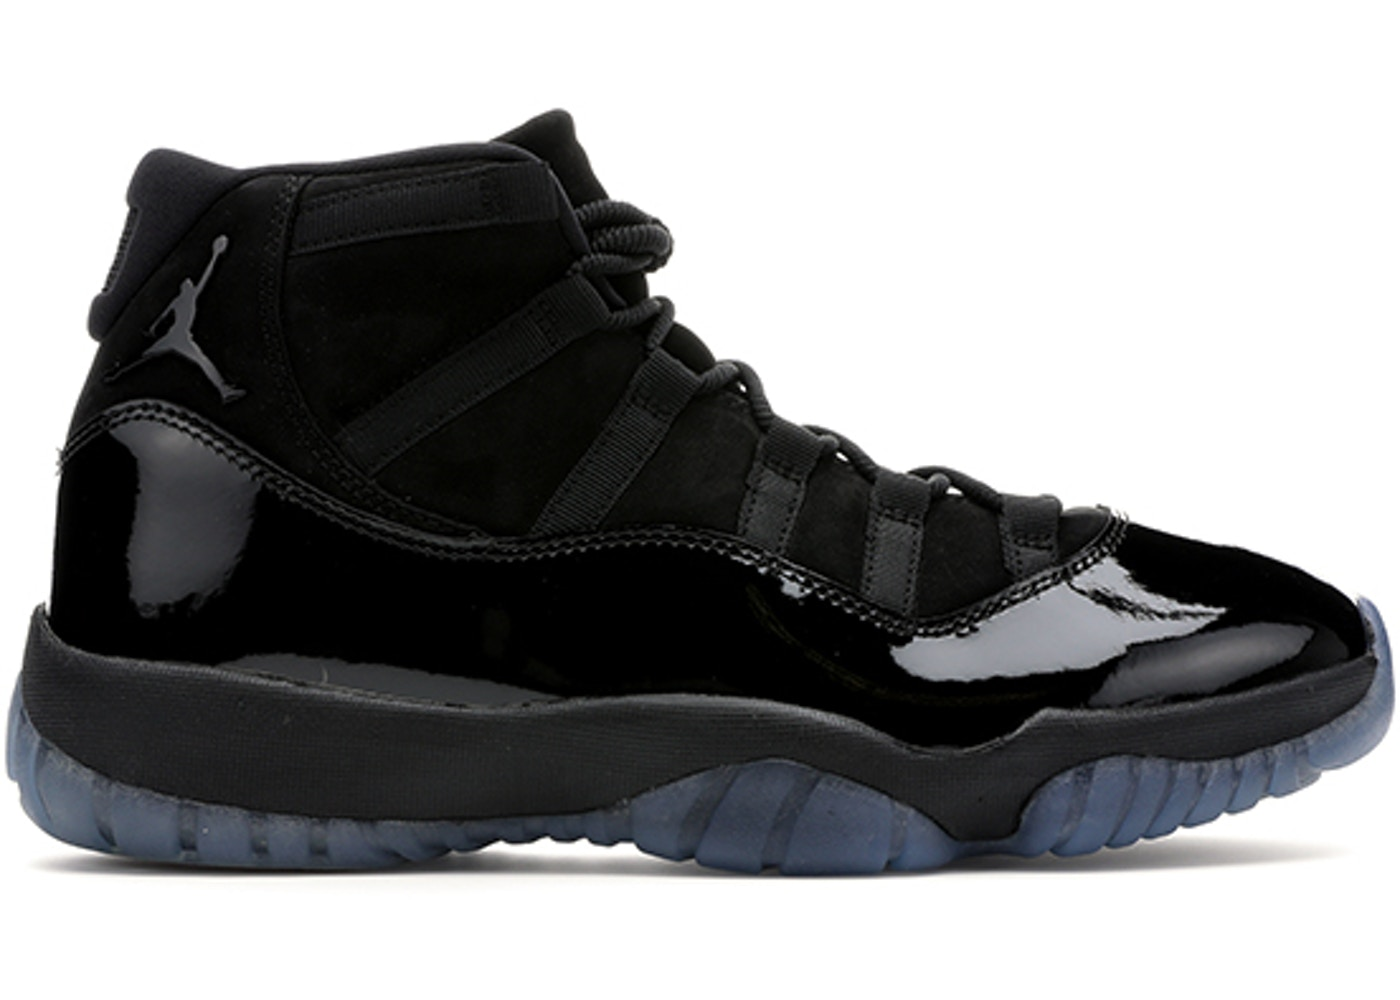 Jordan 11 Retro Cap and Gown - 378037-005 8aebdb33184